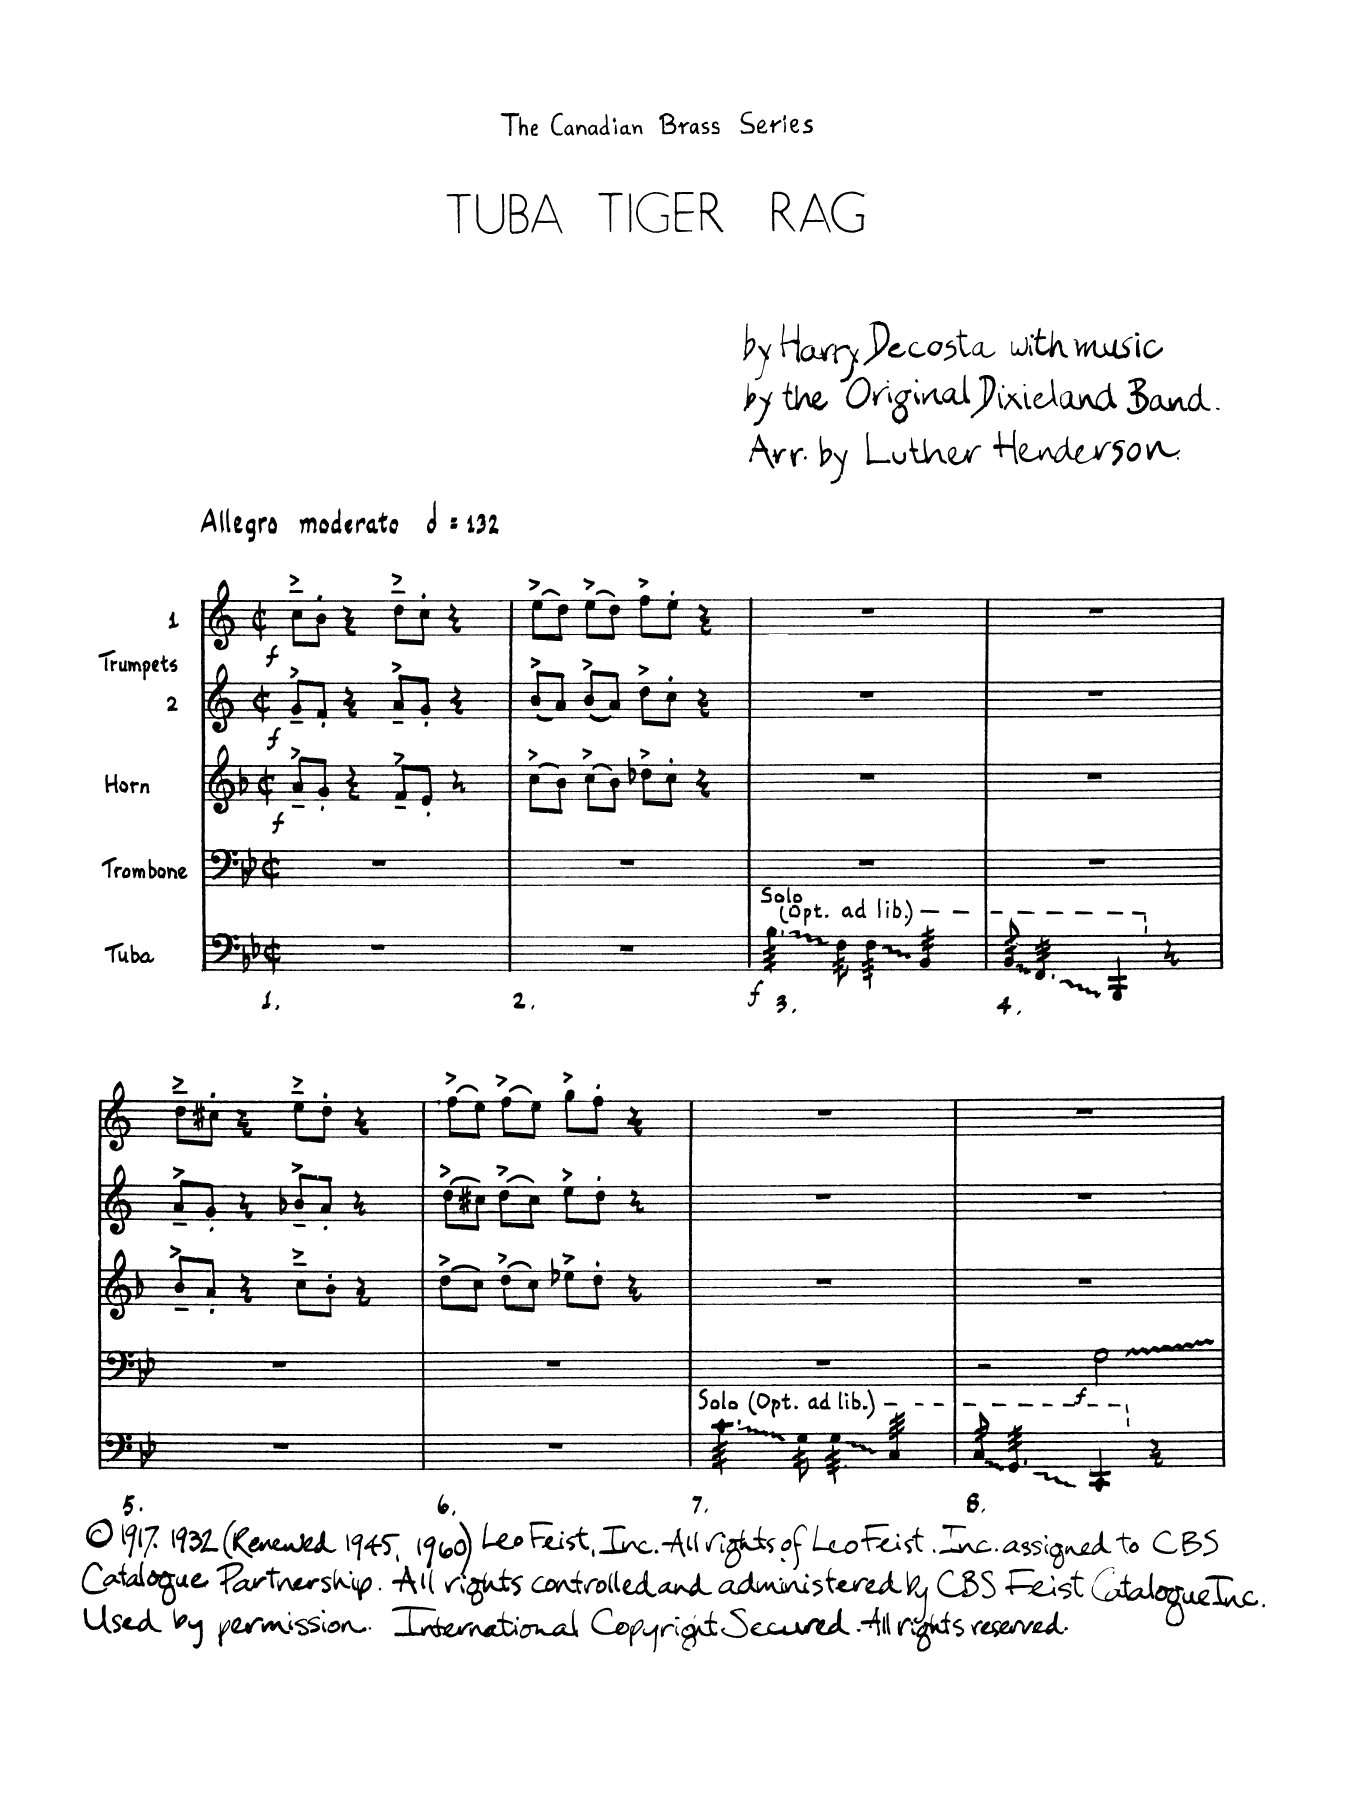 Tuba Tiger Rag - Full Score Sheet Music